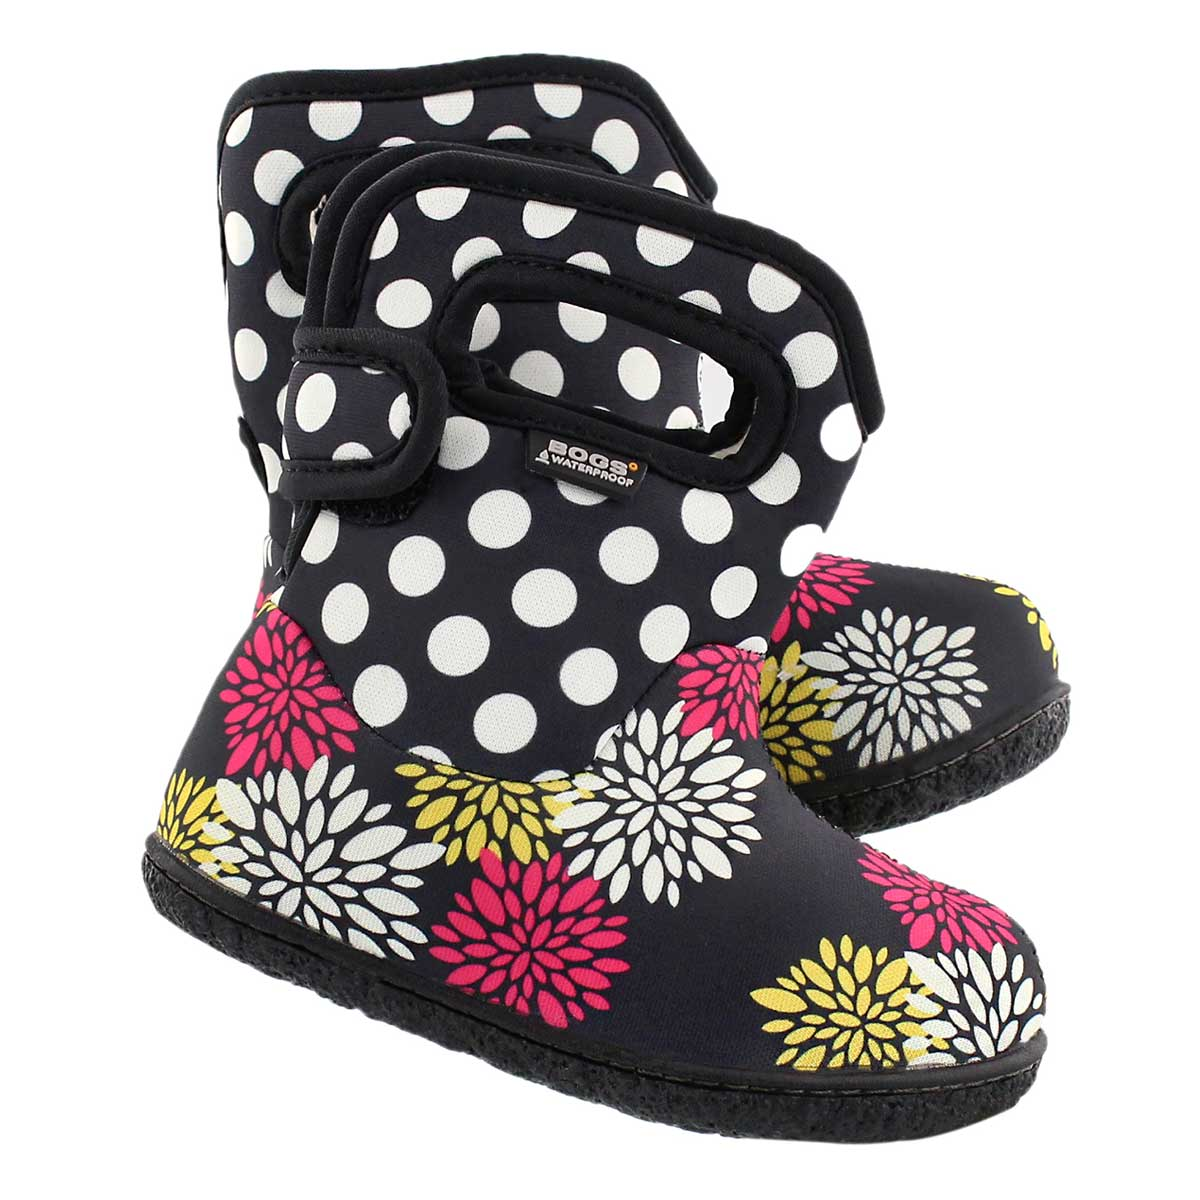 Infs Classic Pompon Dots blk wtpf boot